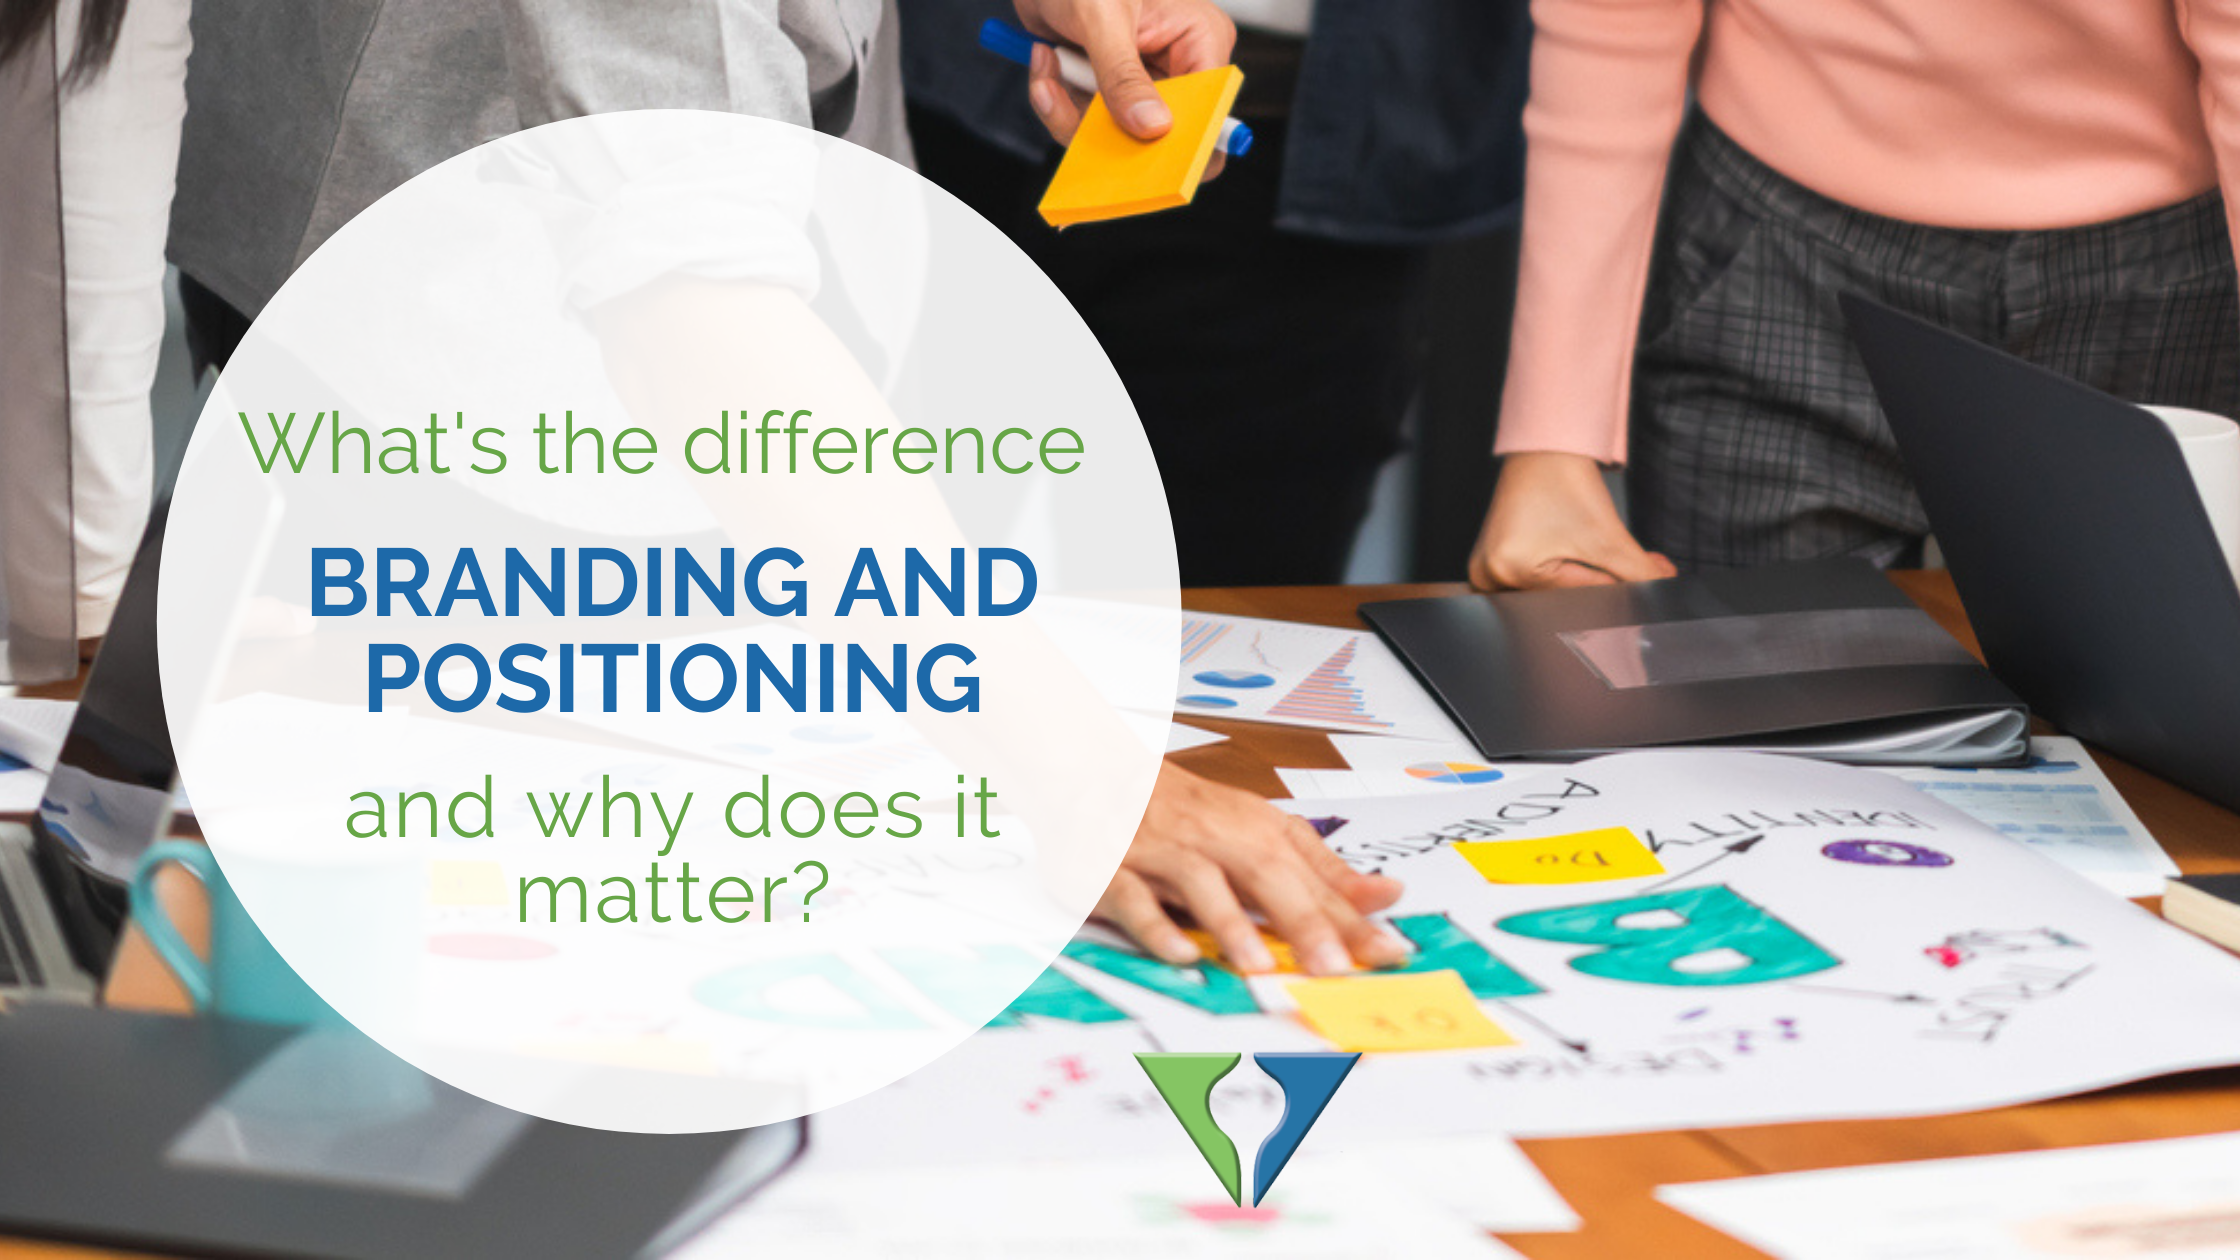 Branding and Positioning: What's the difference and why does it matter?